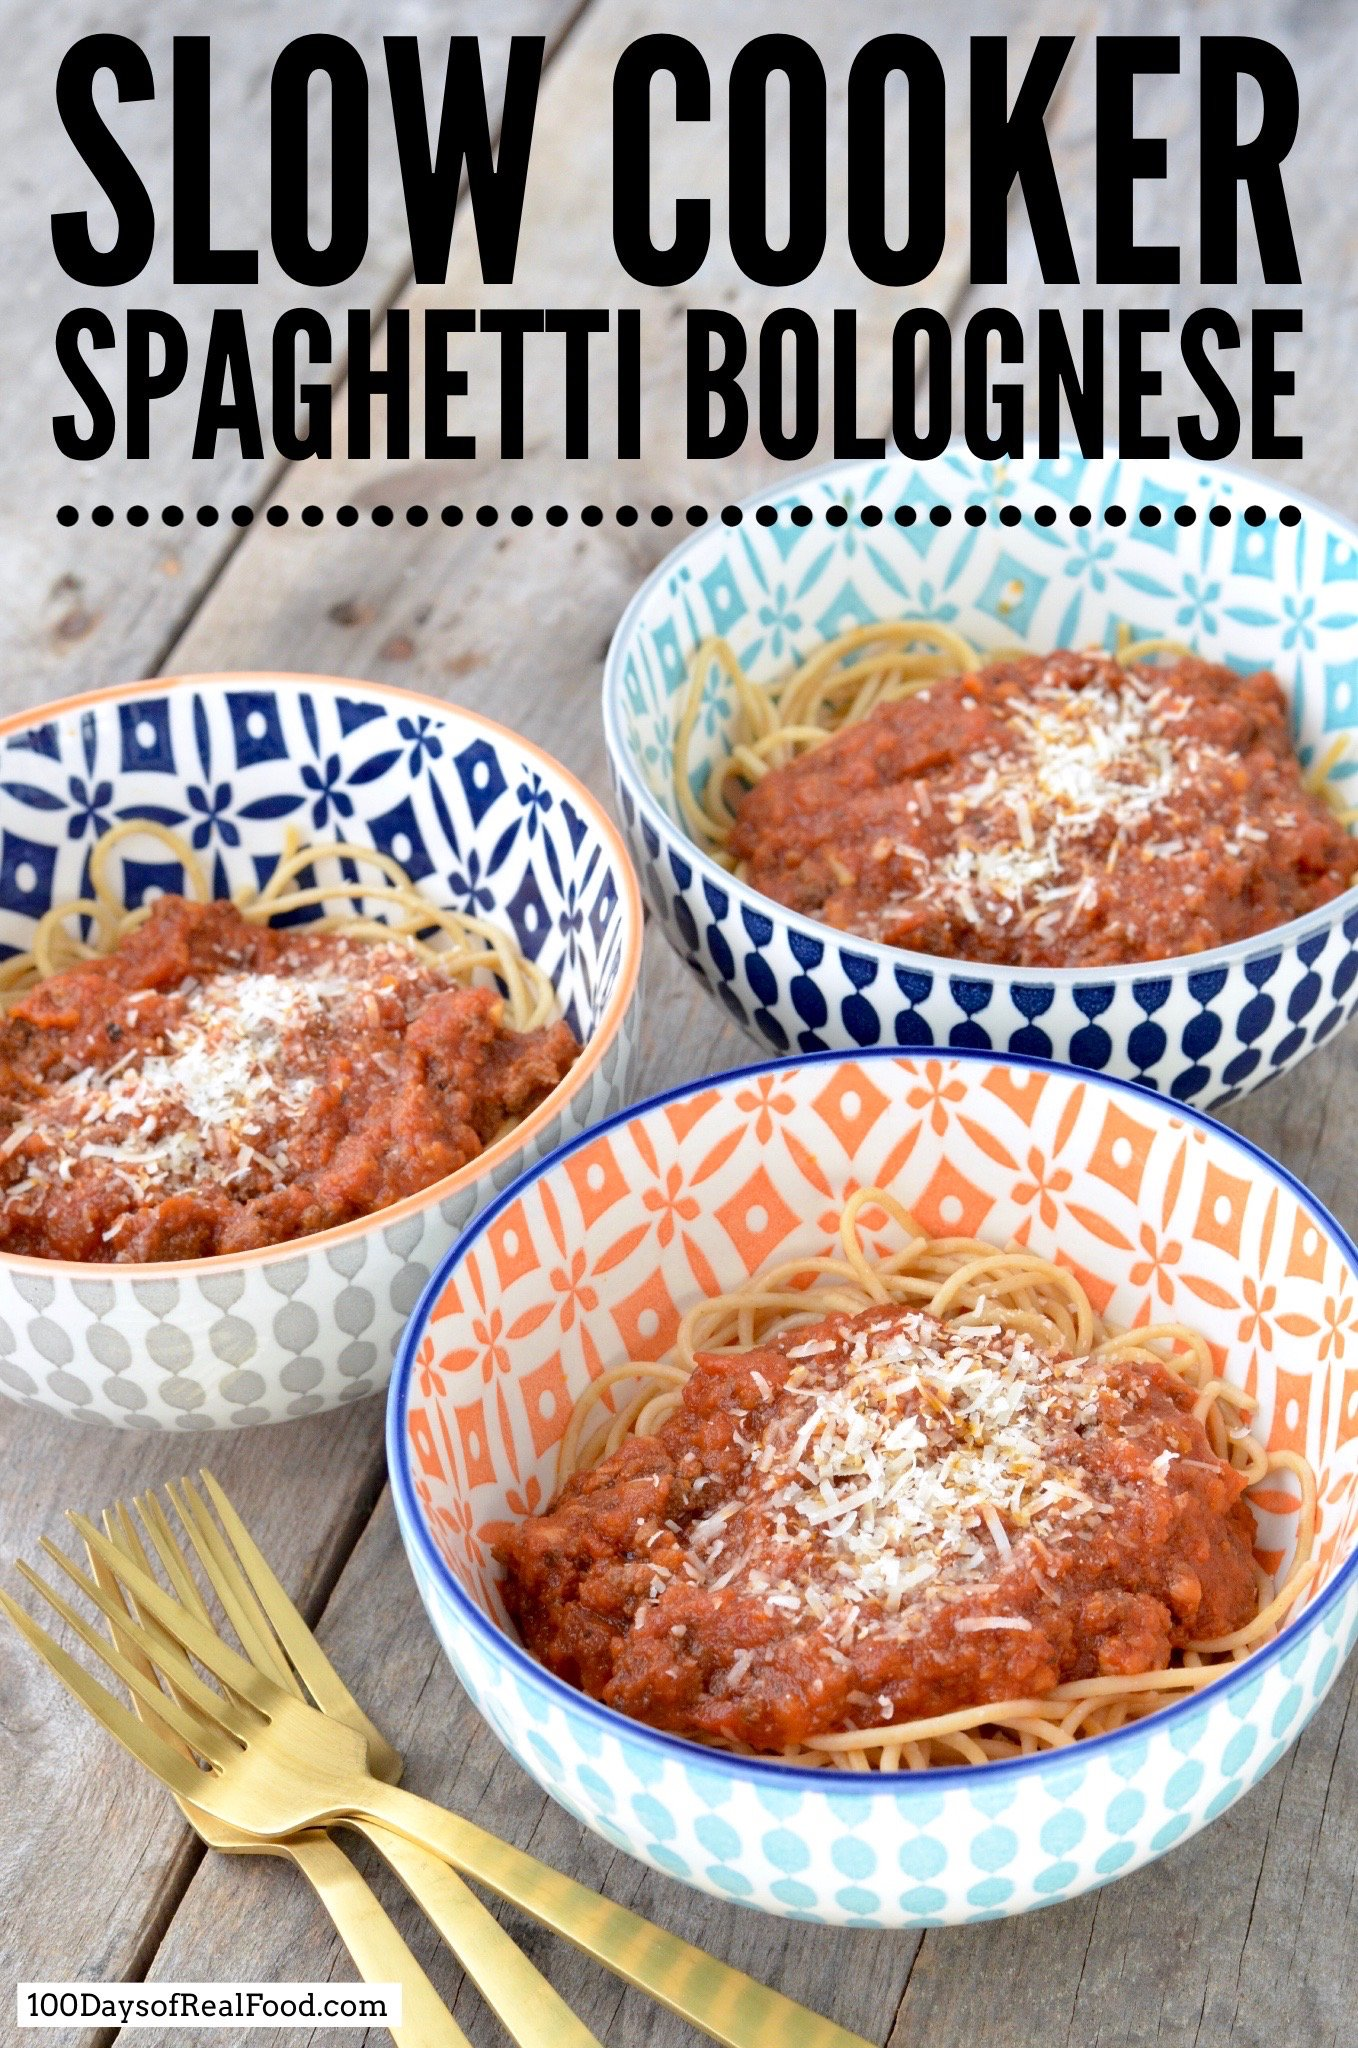 spaghetti bolognese from 100 Days of Real Food